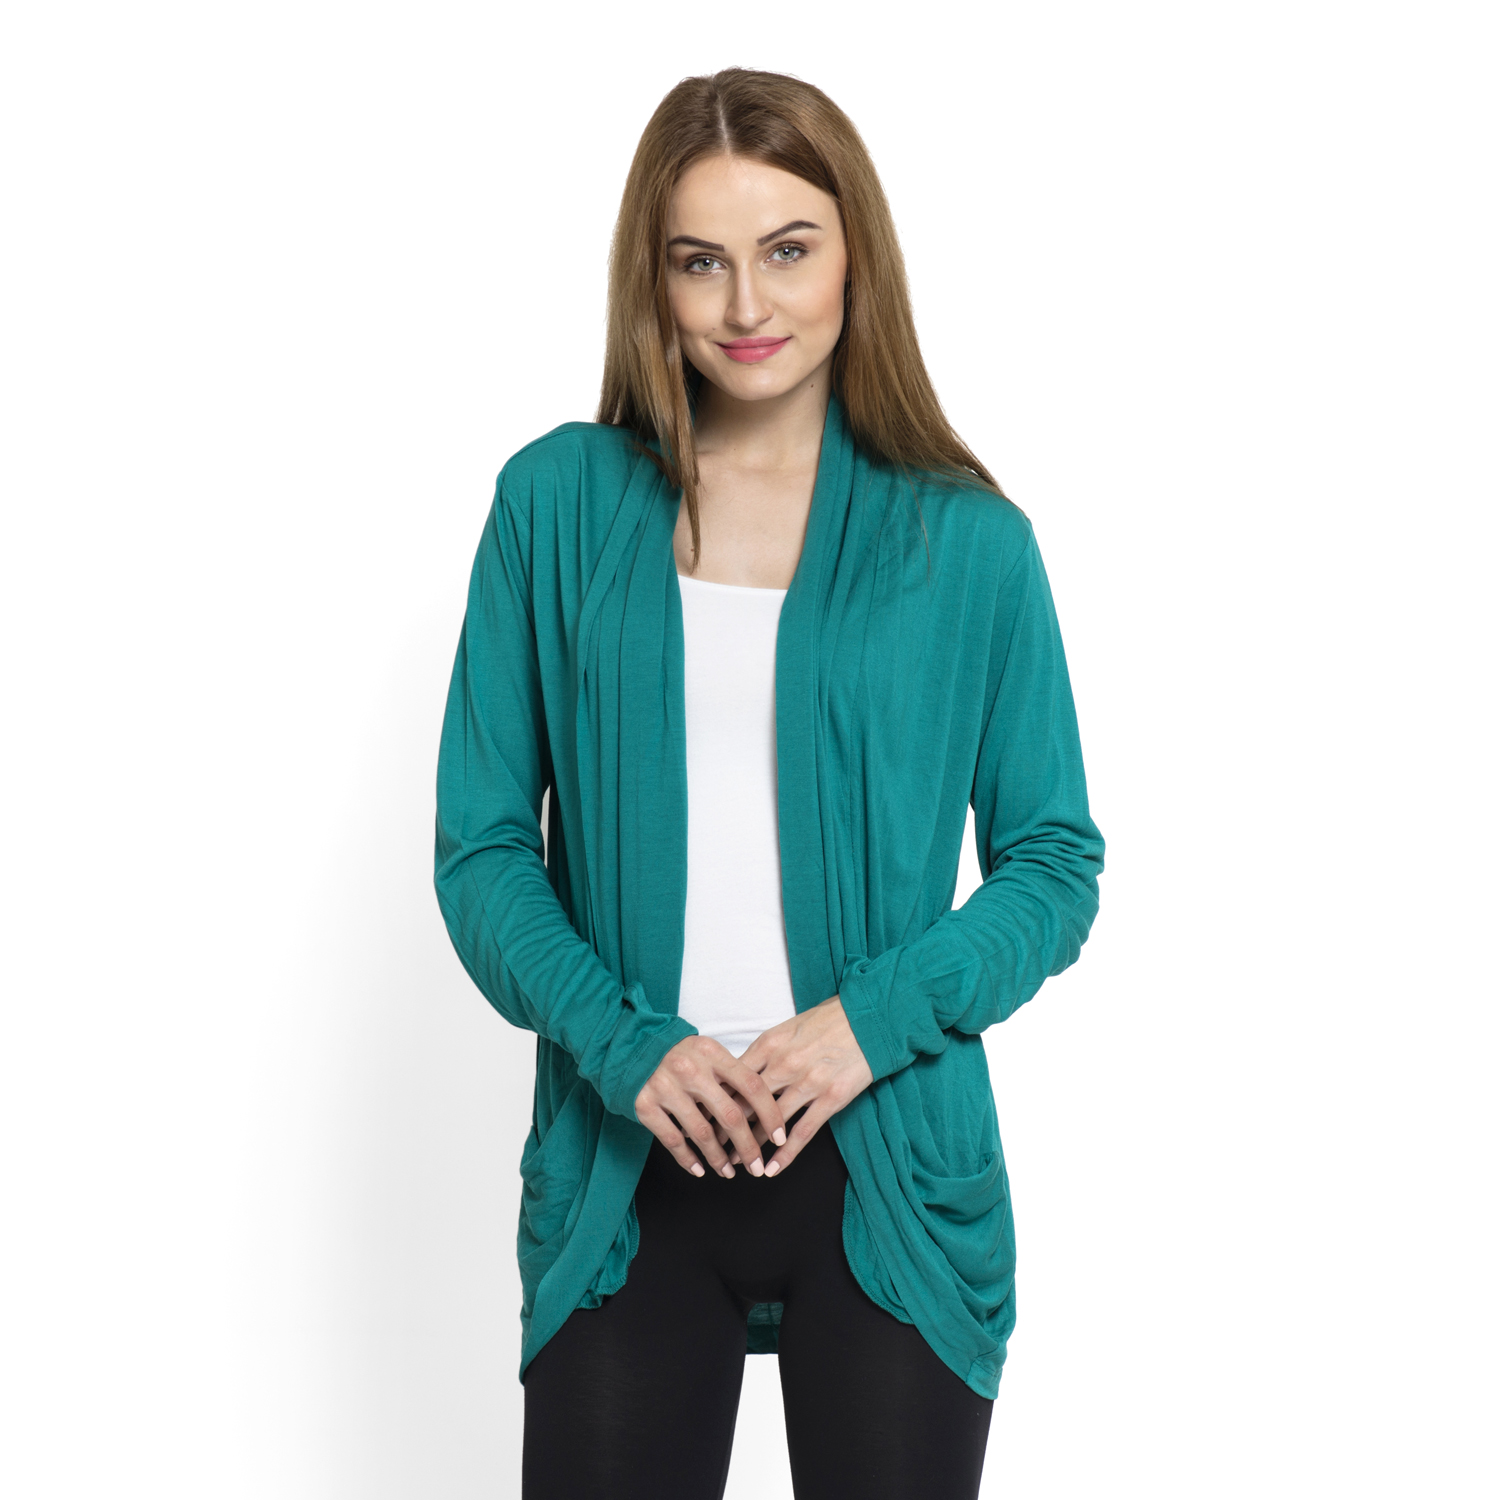 Teal 100% Viscose Waterfall Cardigan (Free Size) | cardigans ...